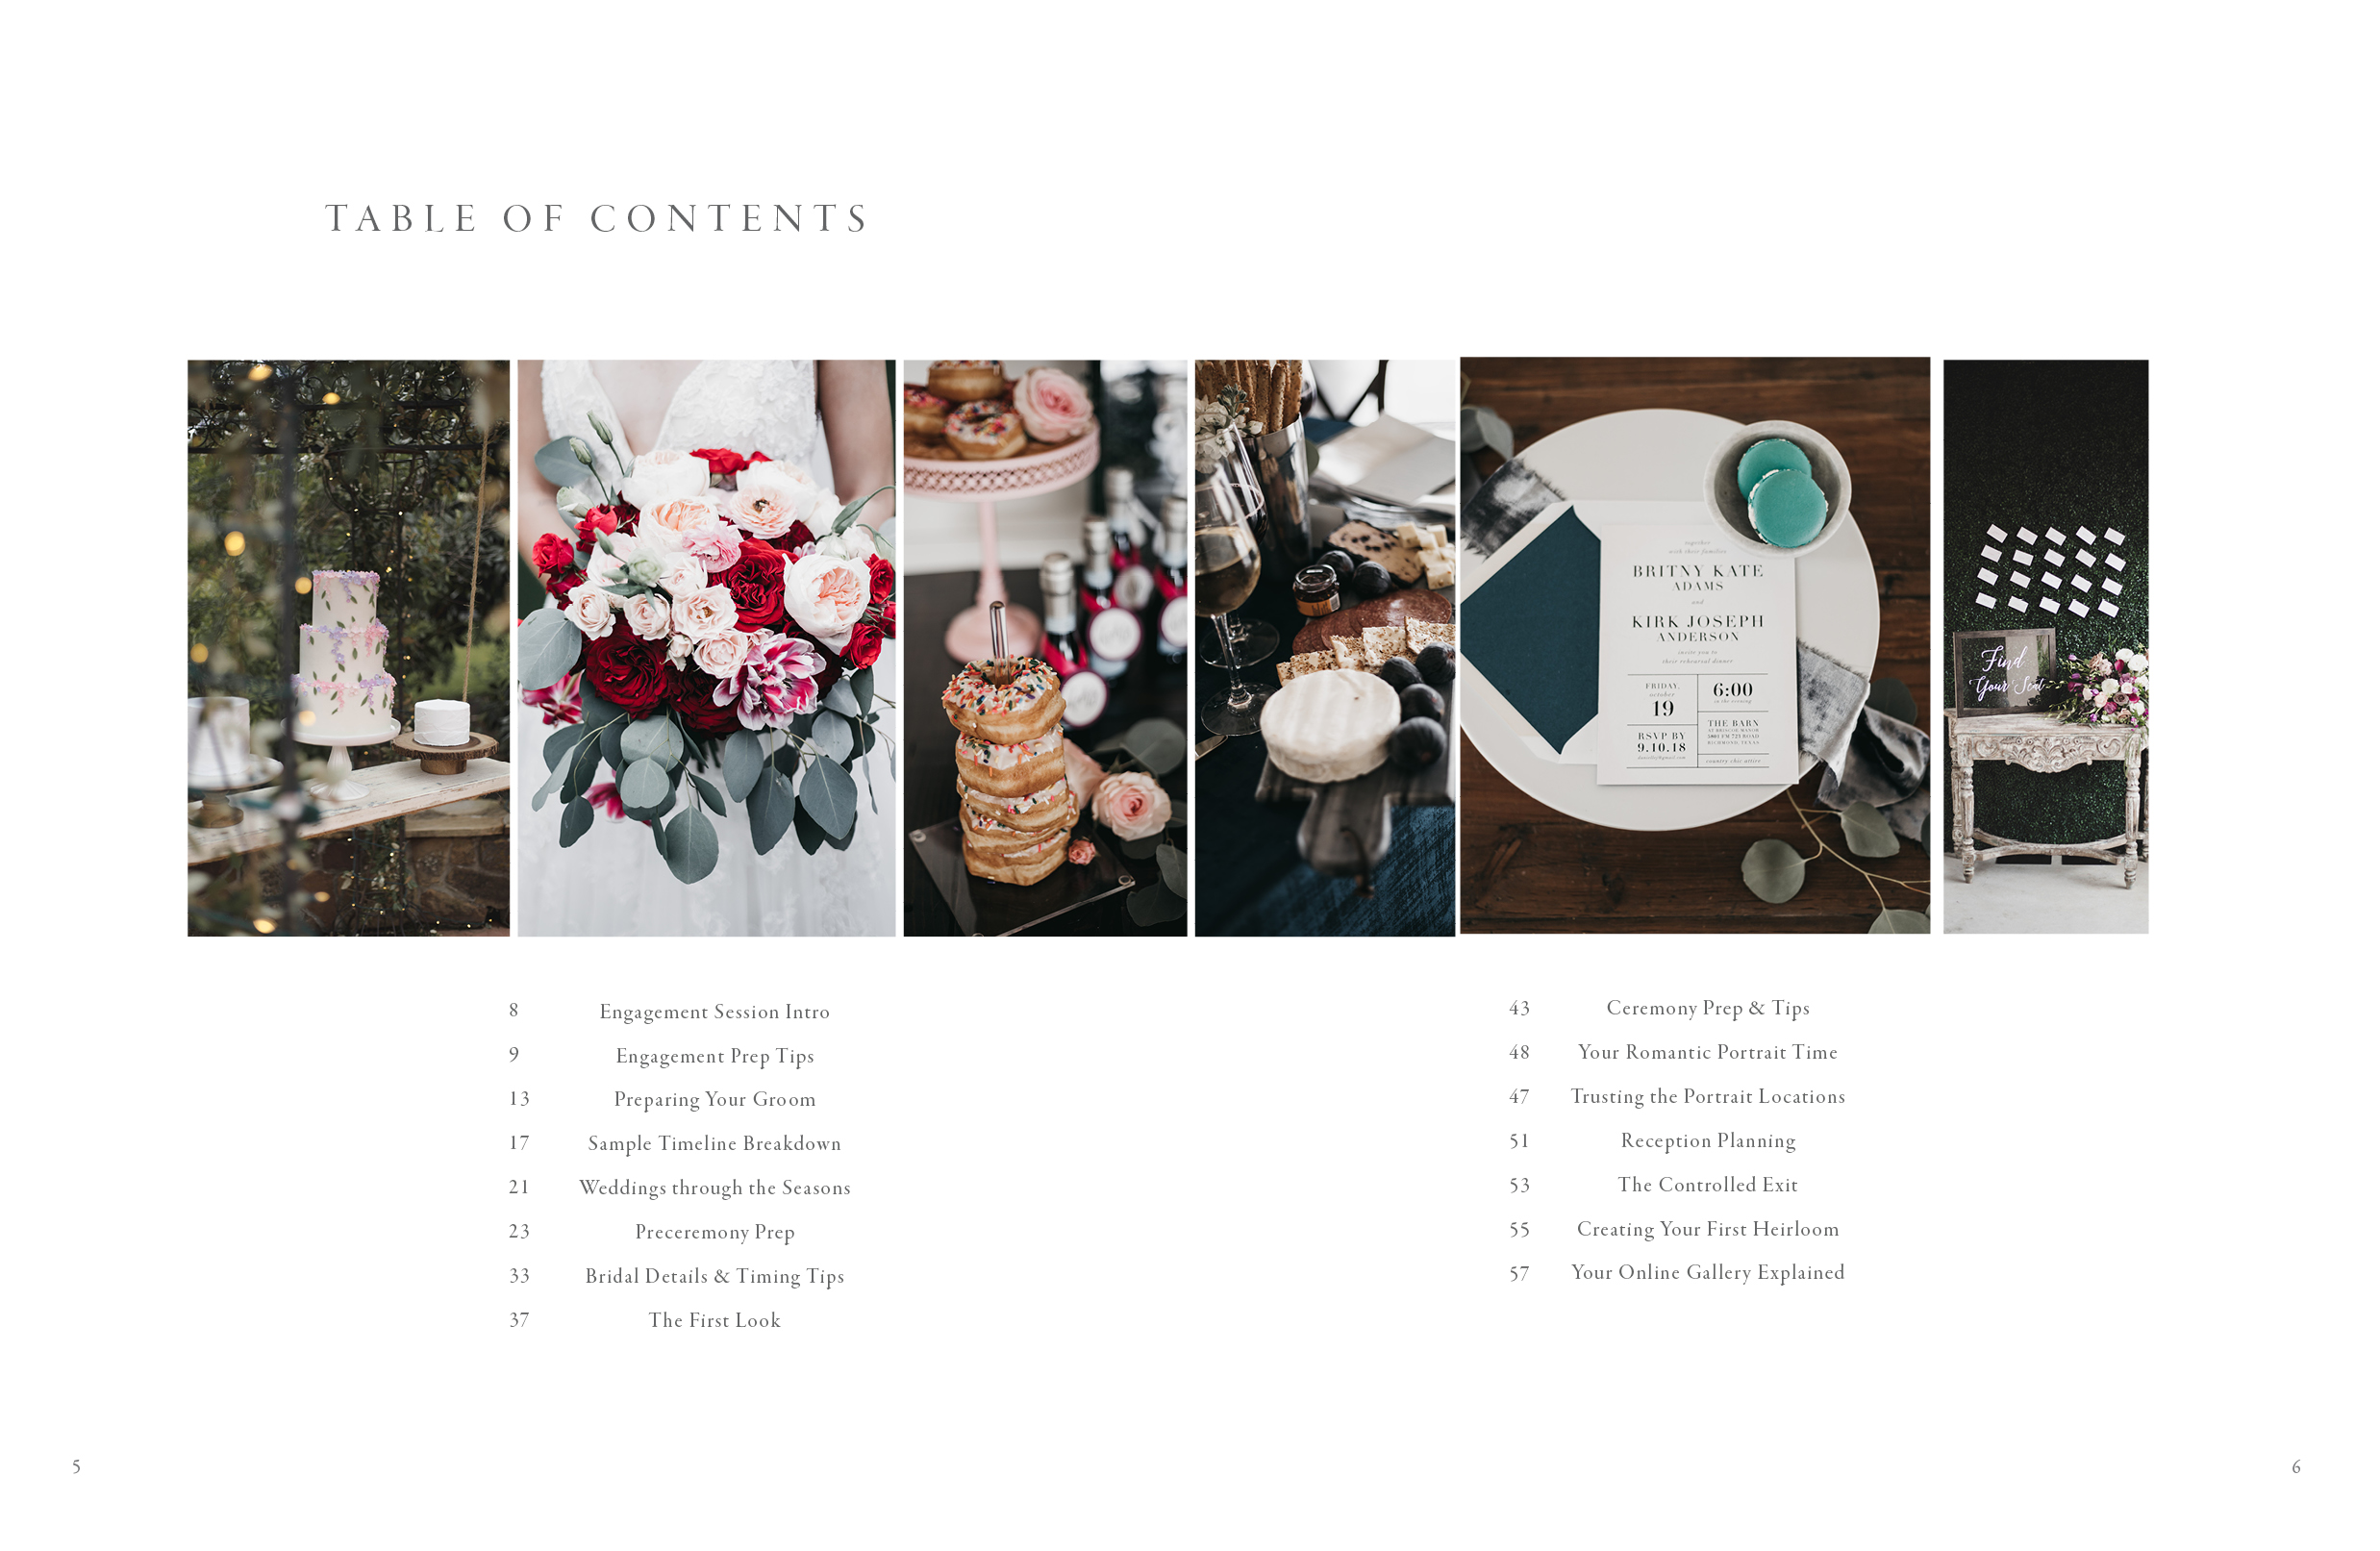 2019 Wedding Guide4.jpg